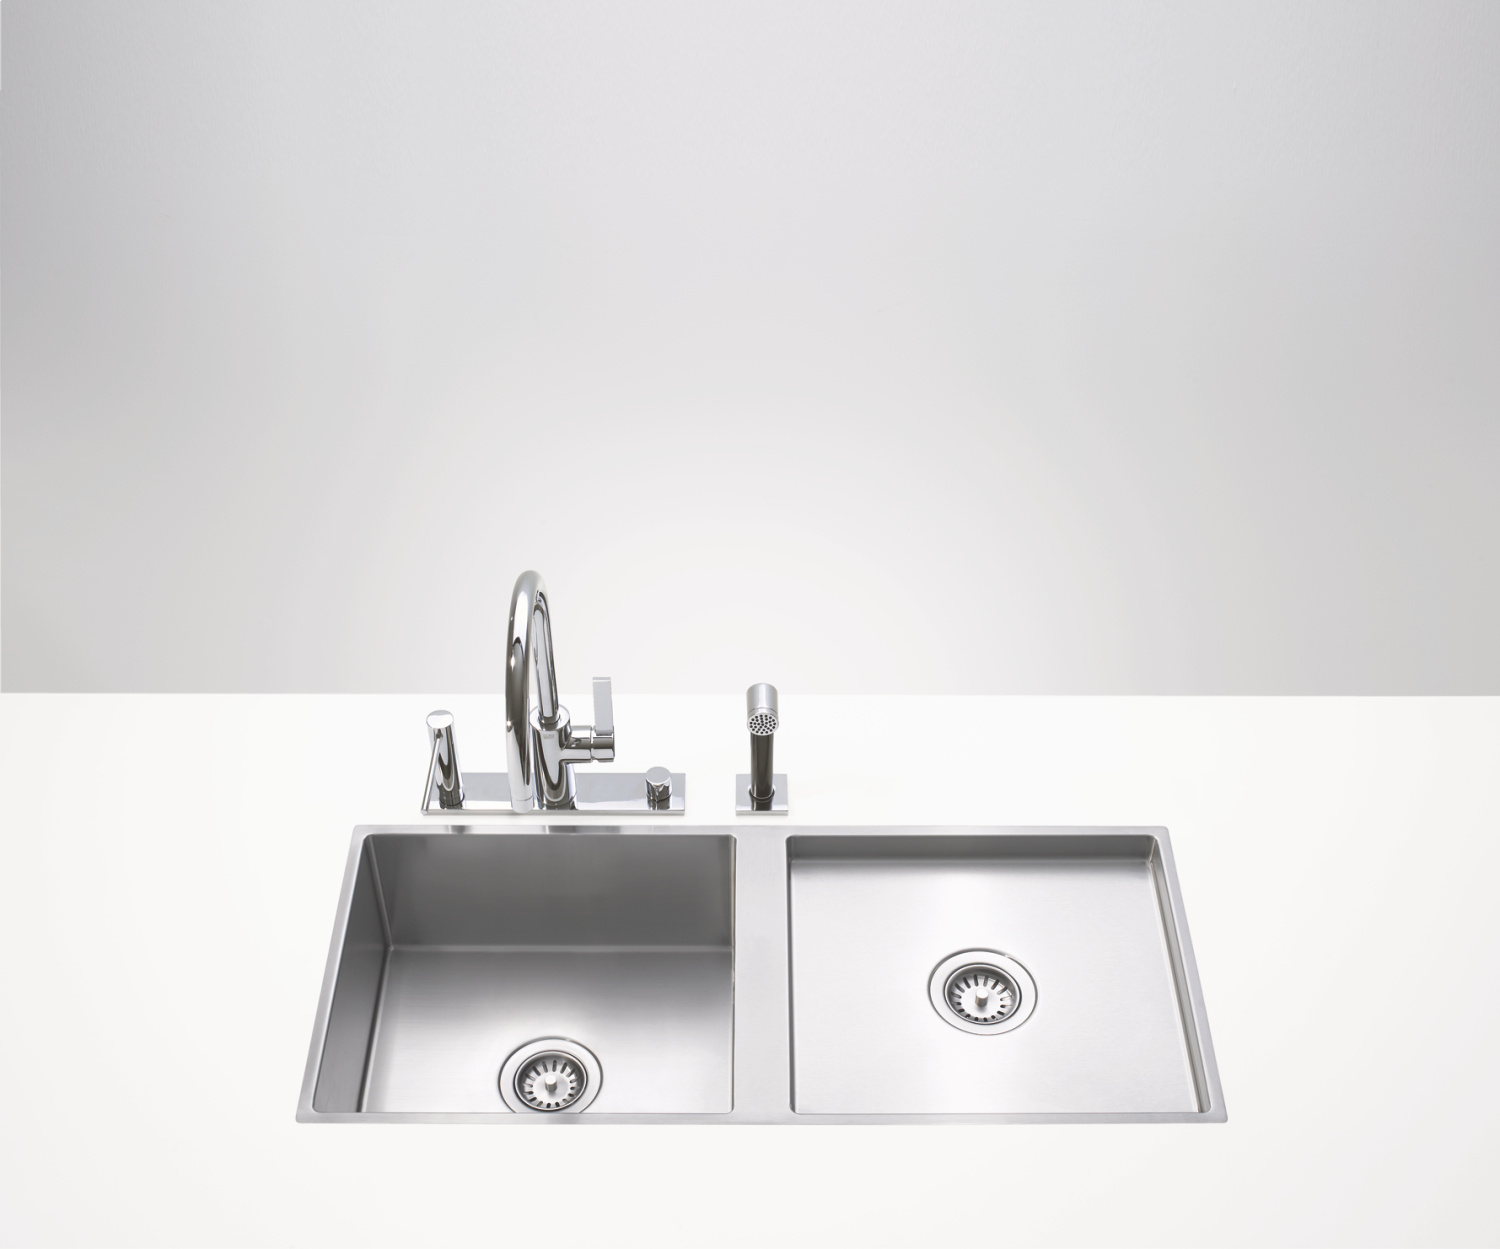 Double sink - matt high-grade steel - 38 561 000-86